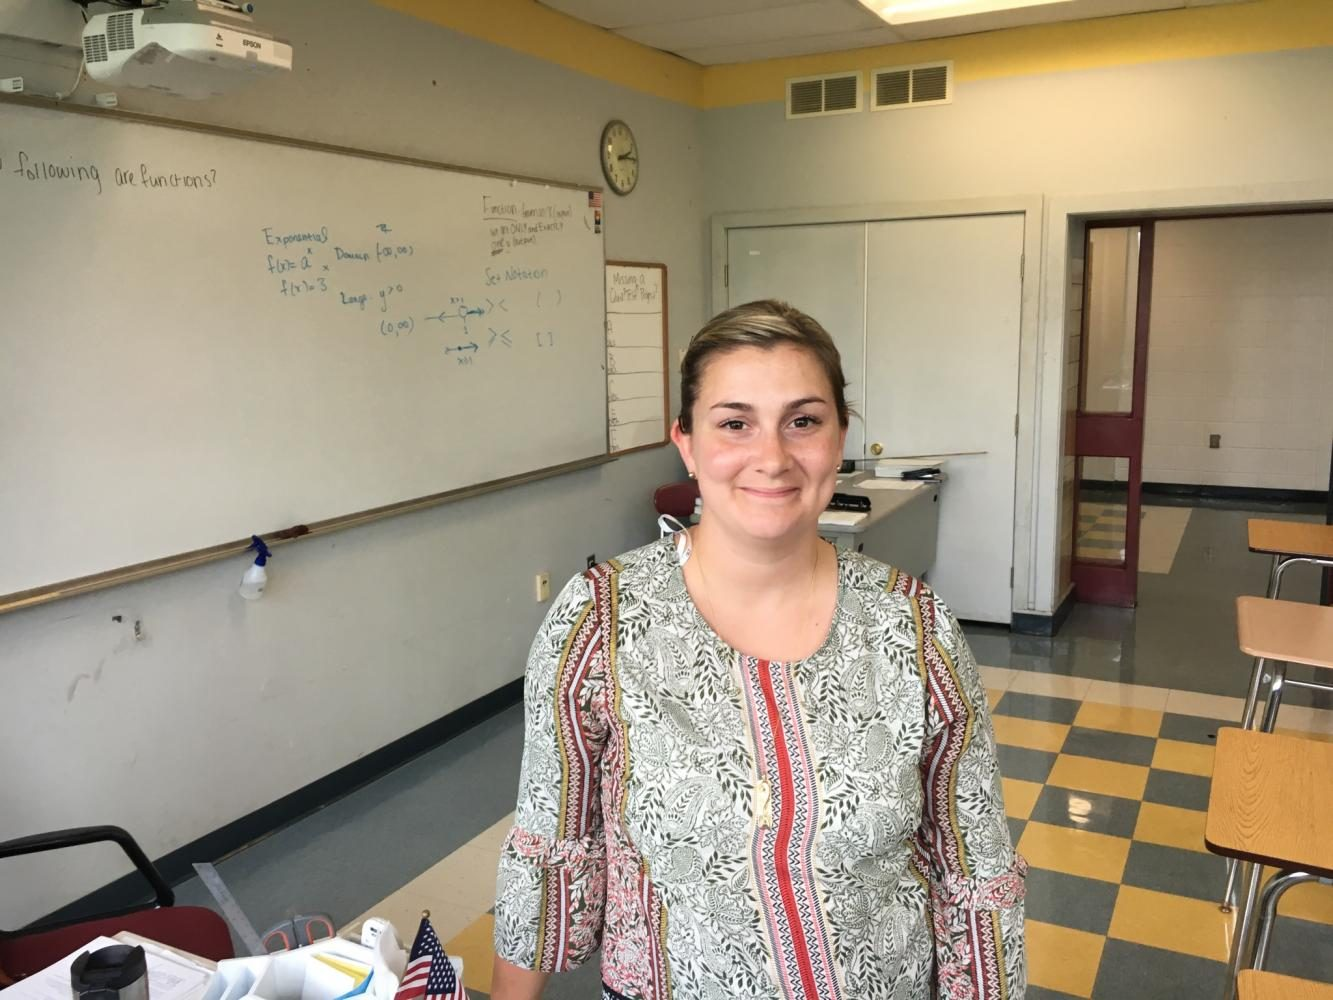 Amber McGlynn poses a smile in her new classroom.